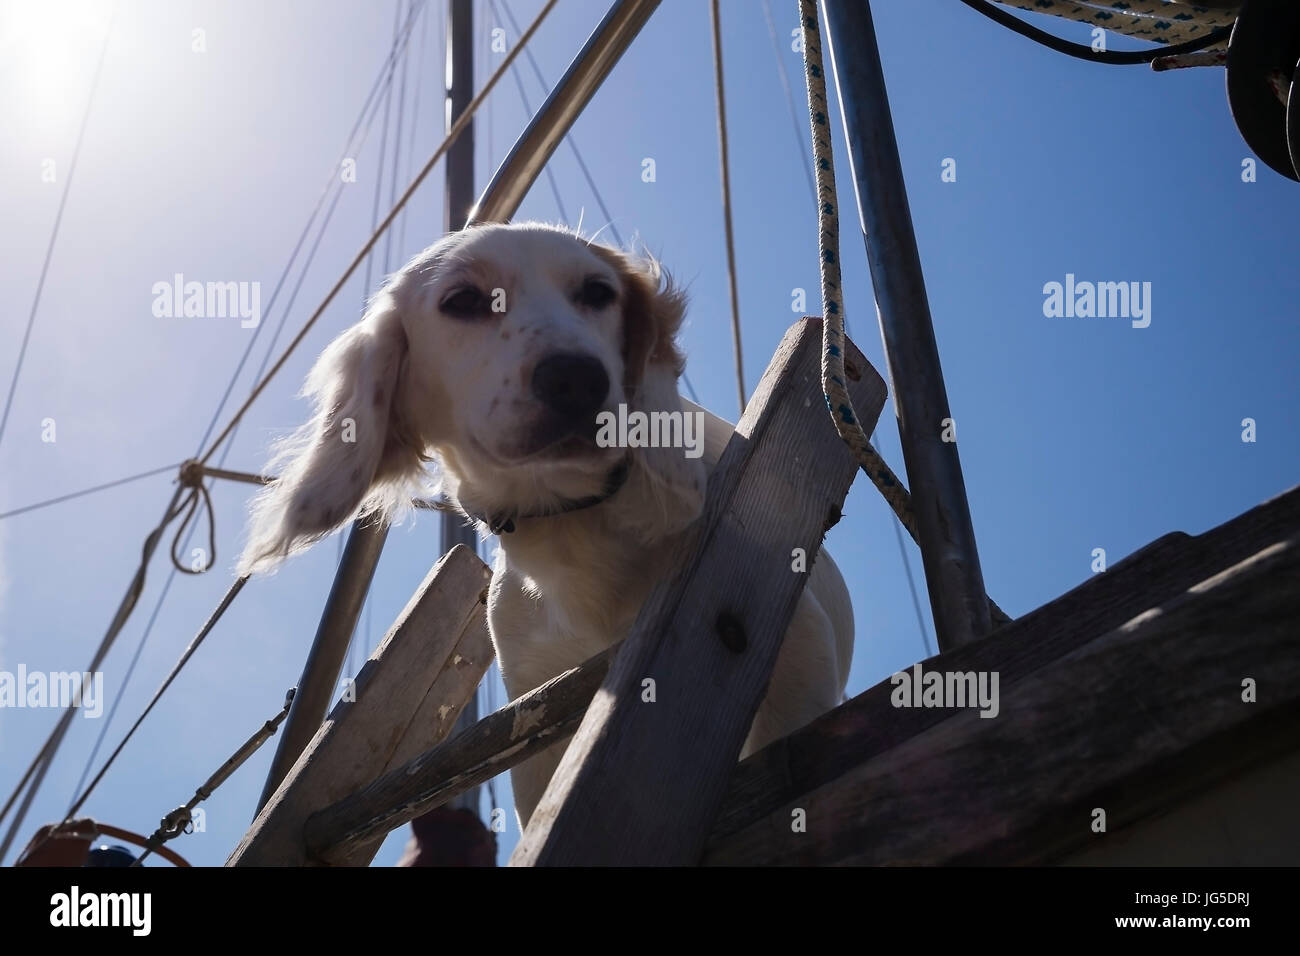 A cute dog in Barmouth Harbour, Gwynedd, Wales, UK - Stock Image